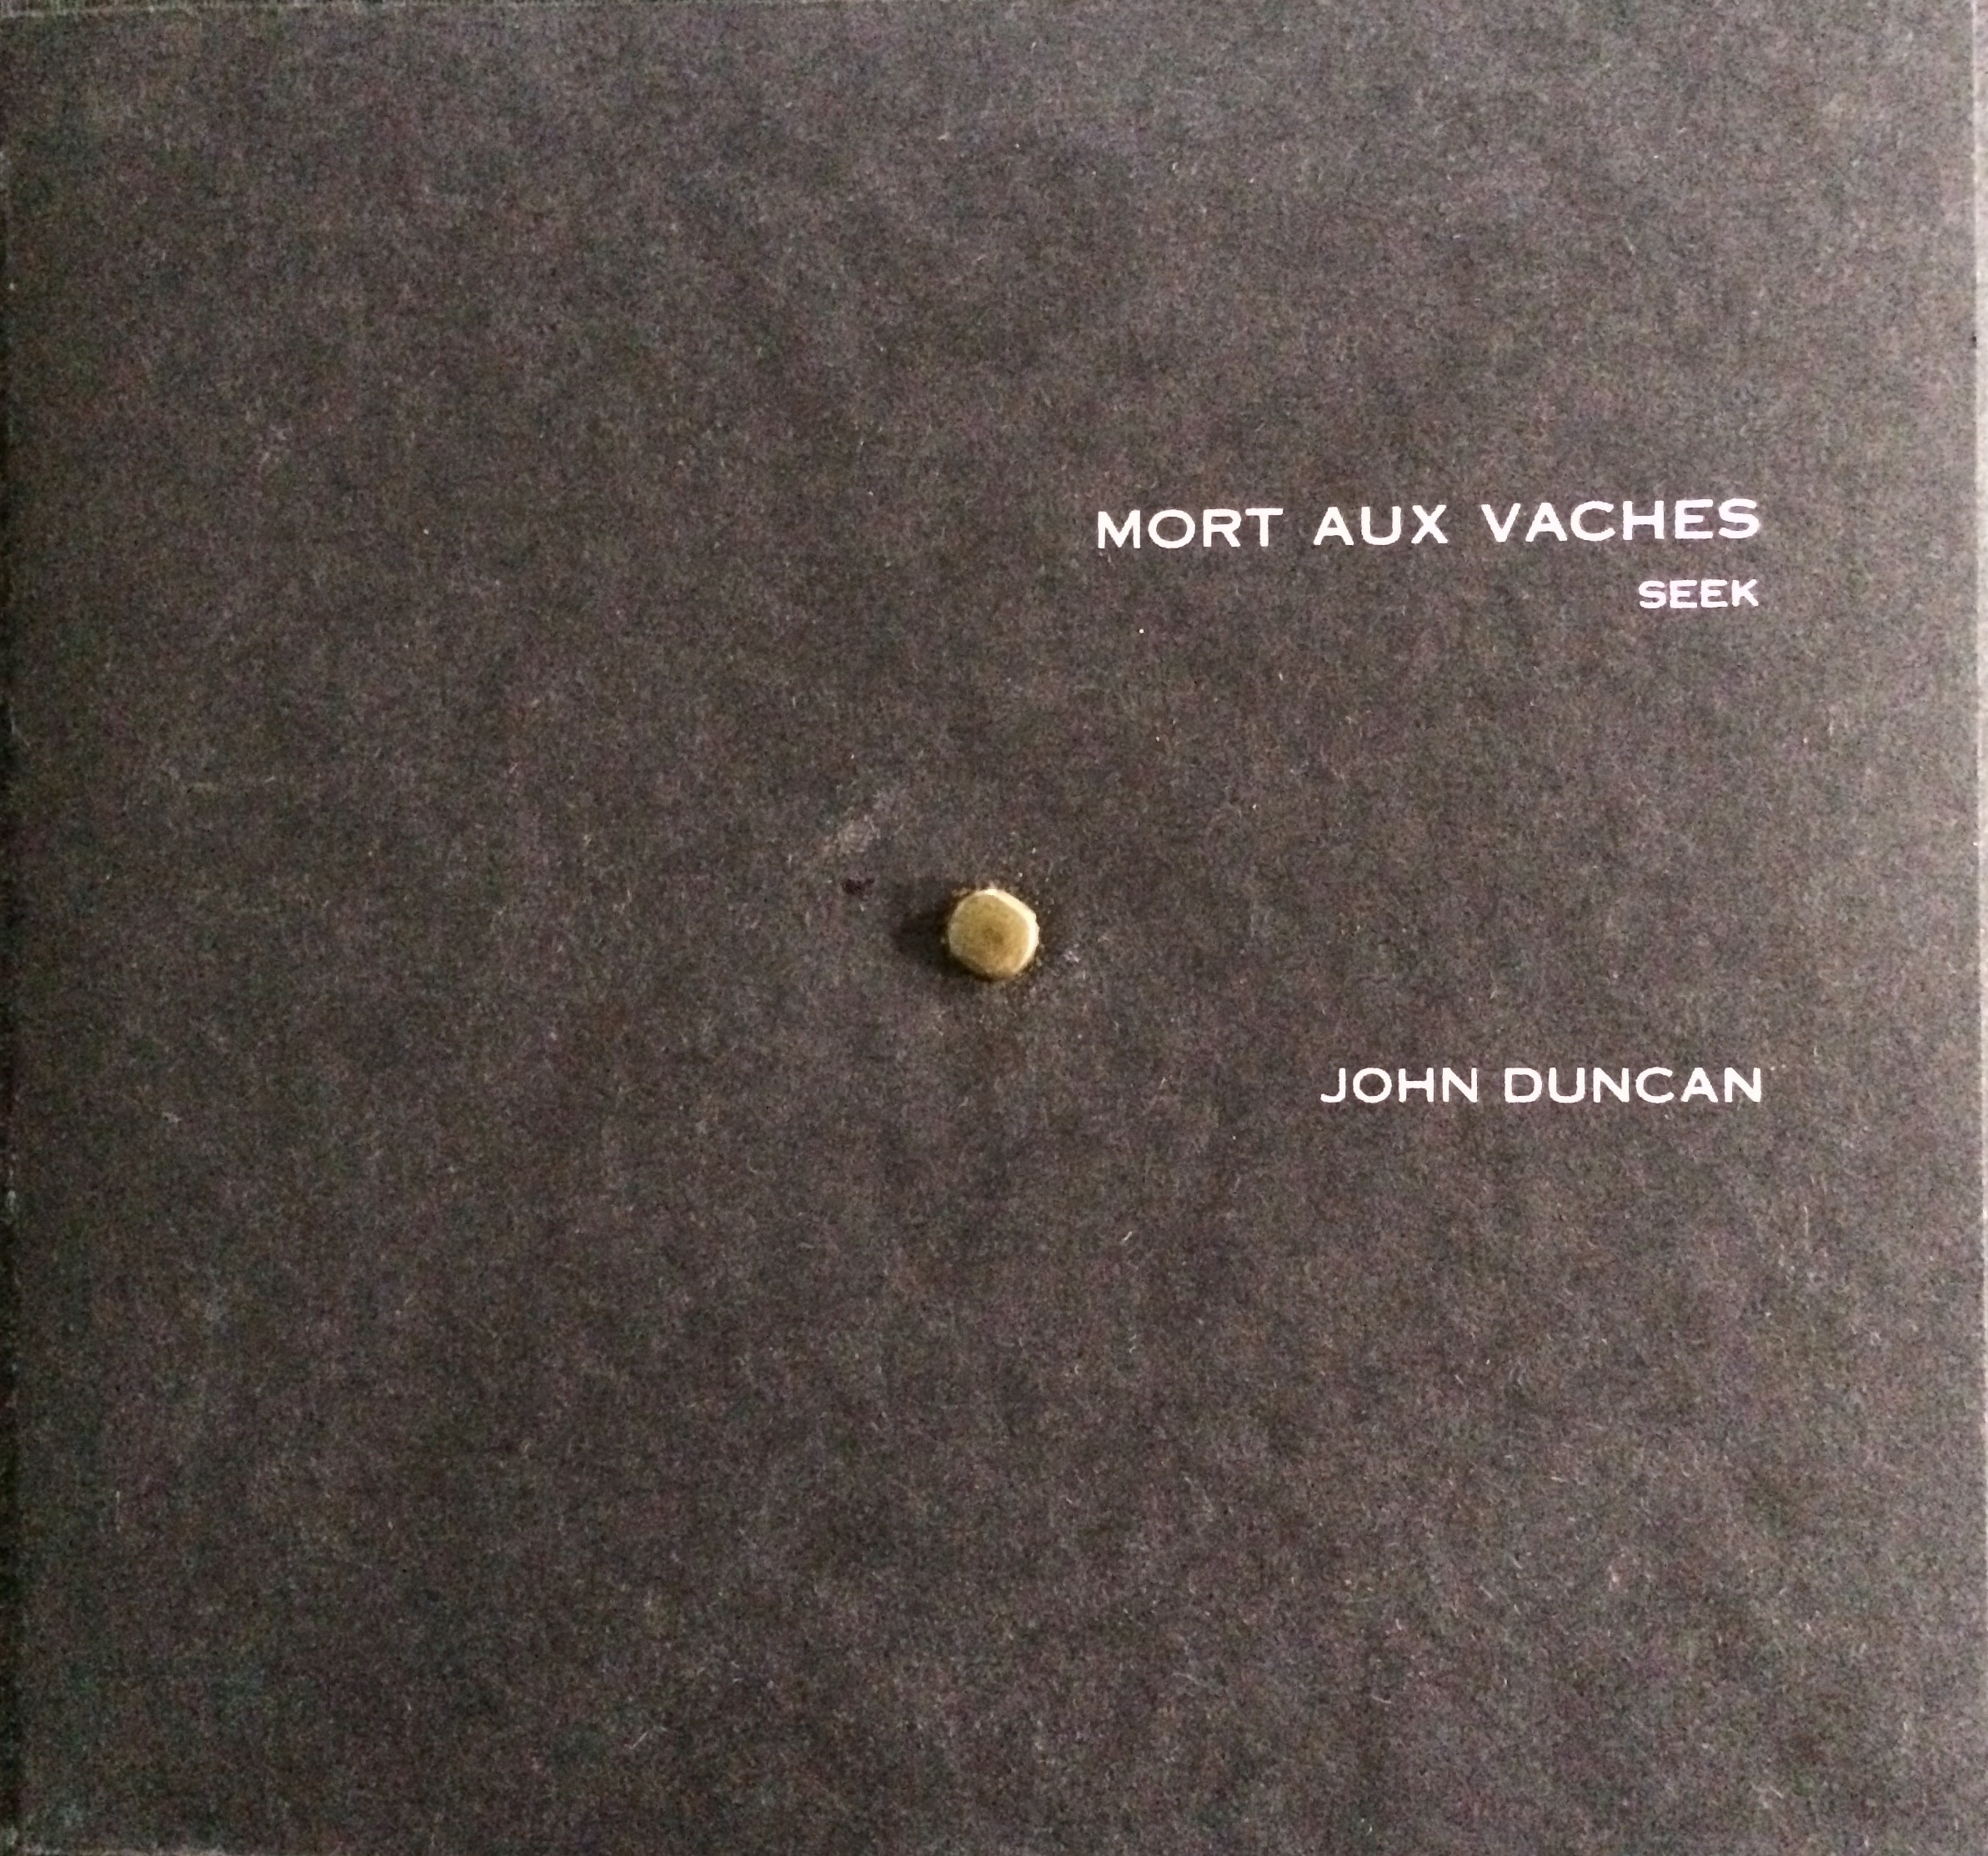 John Duncan 6CD Collection 355Kbps vbr wma [h33t] preview 1